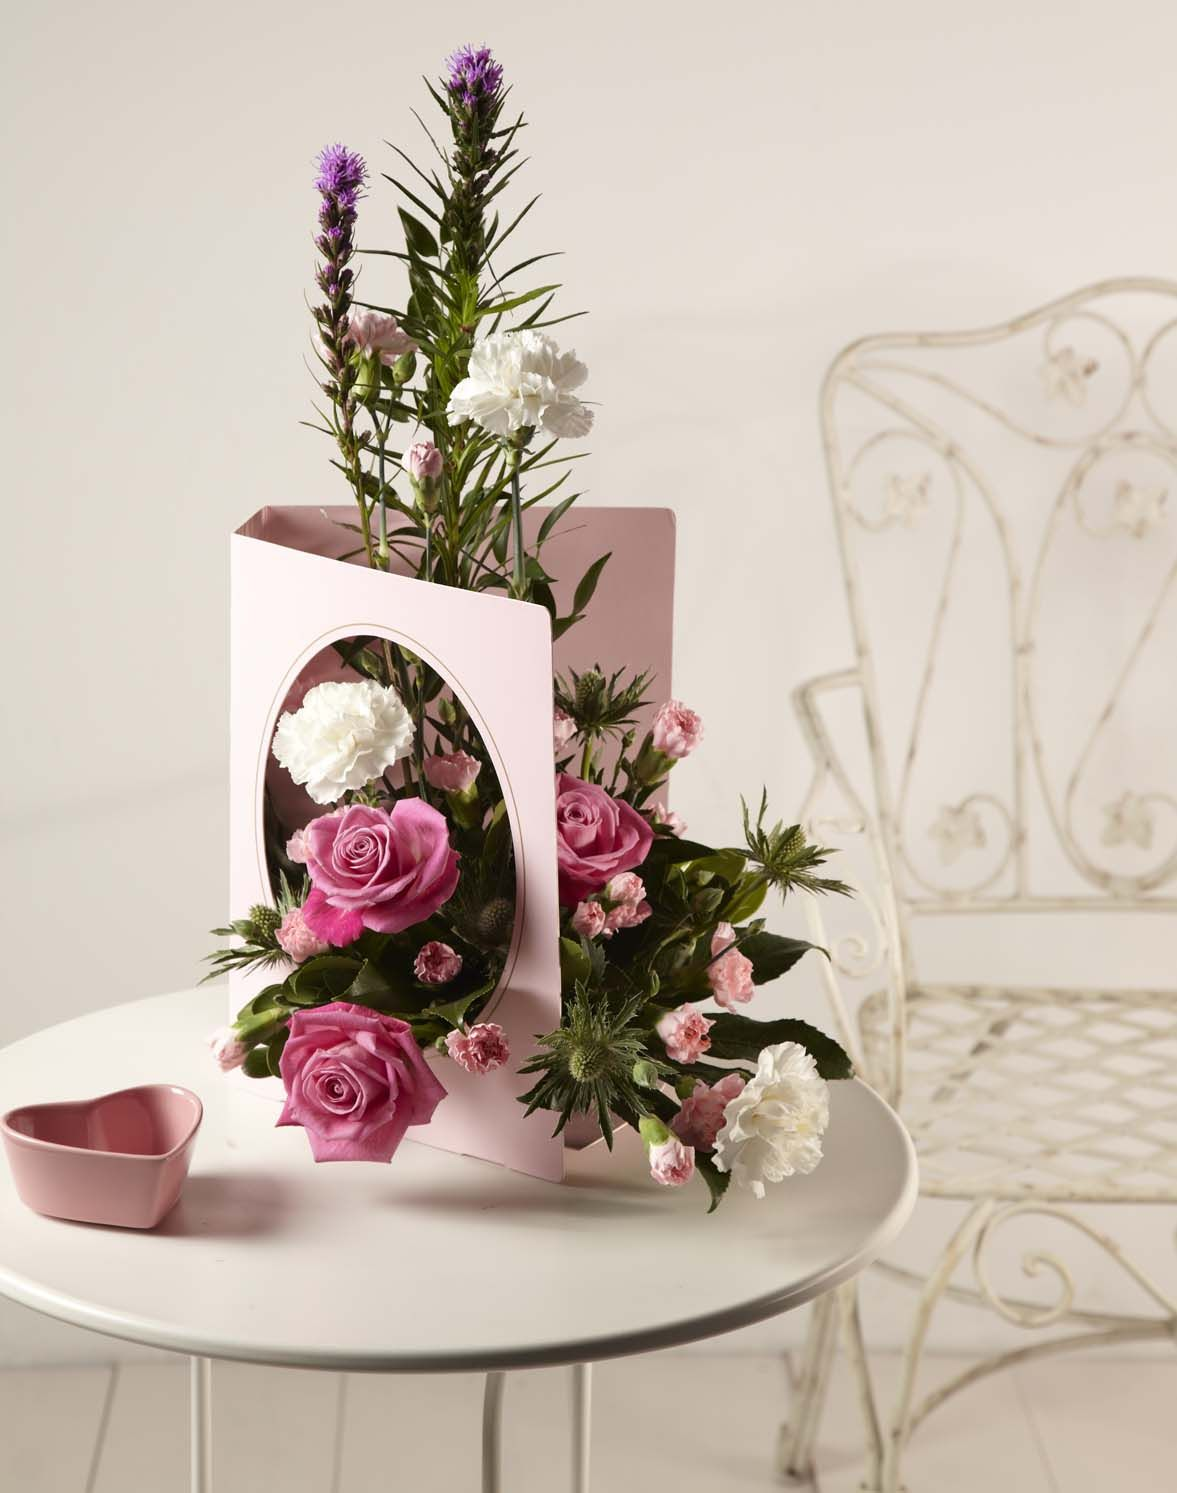 Charming Create A Floral Gift For Motheru0027s Day Using A Living Card From OASIS® Floral  Products